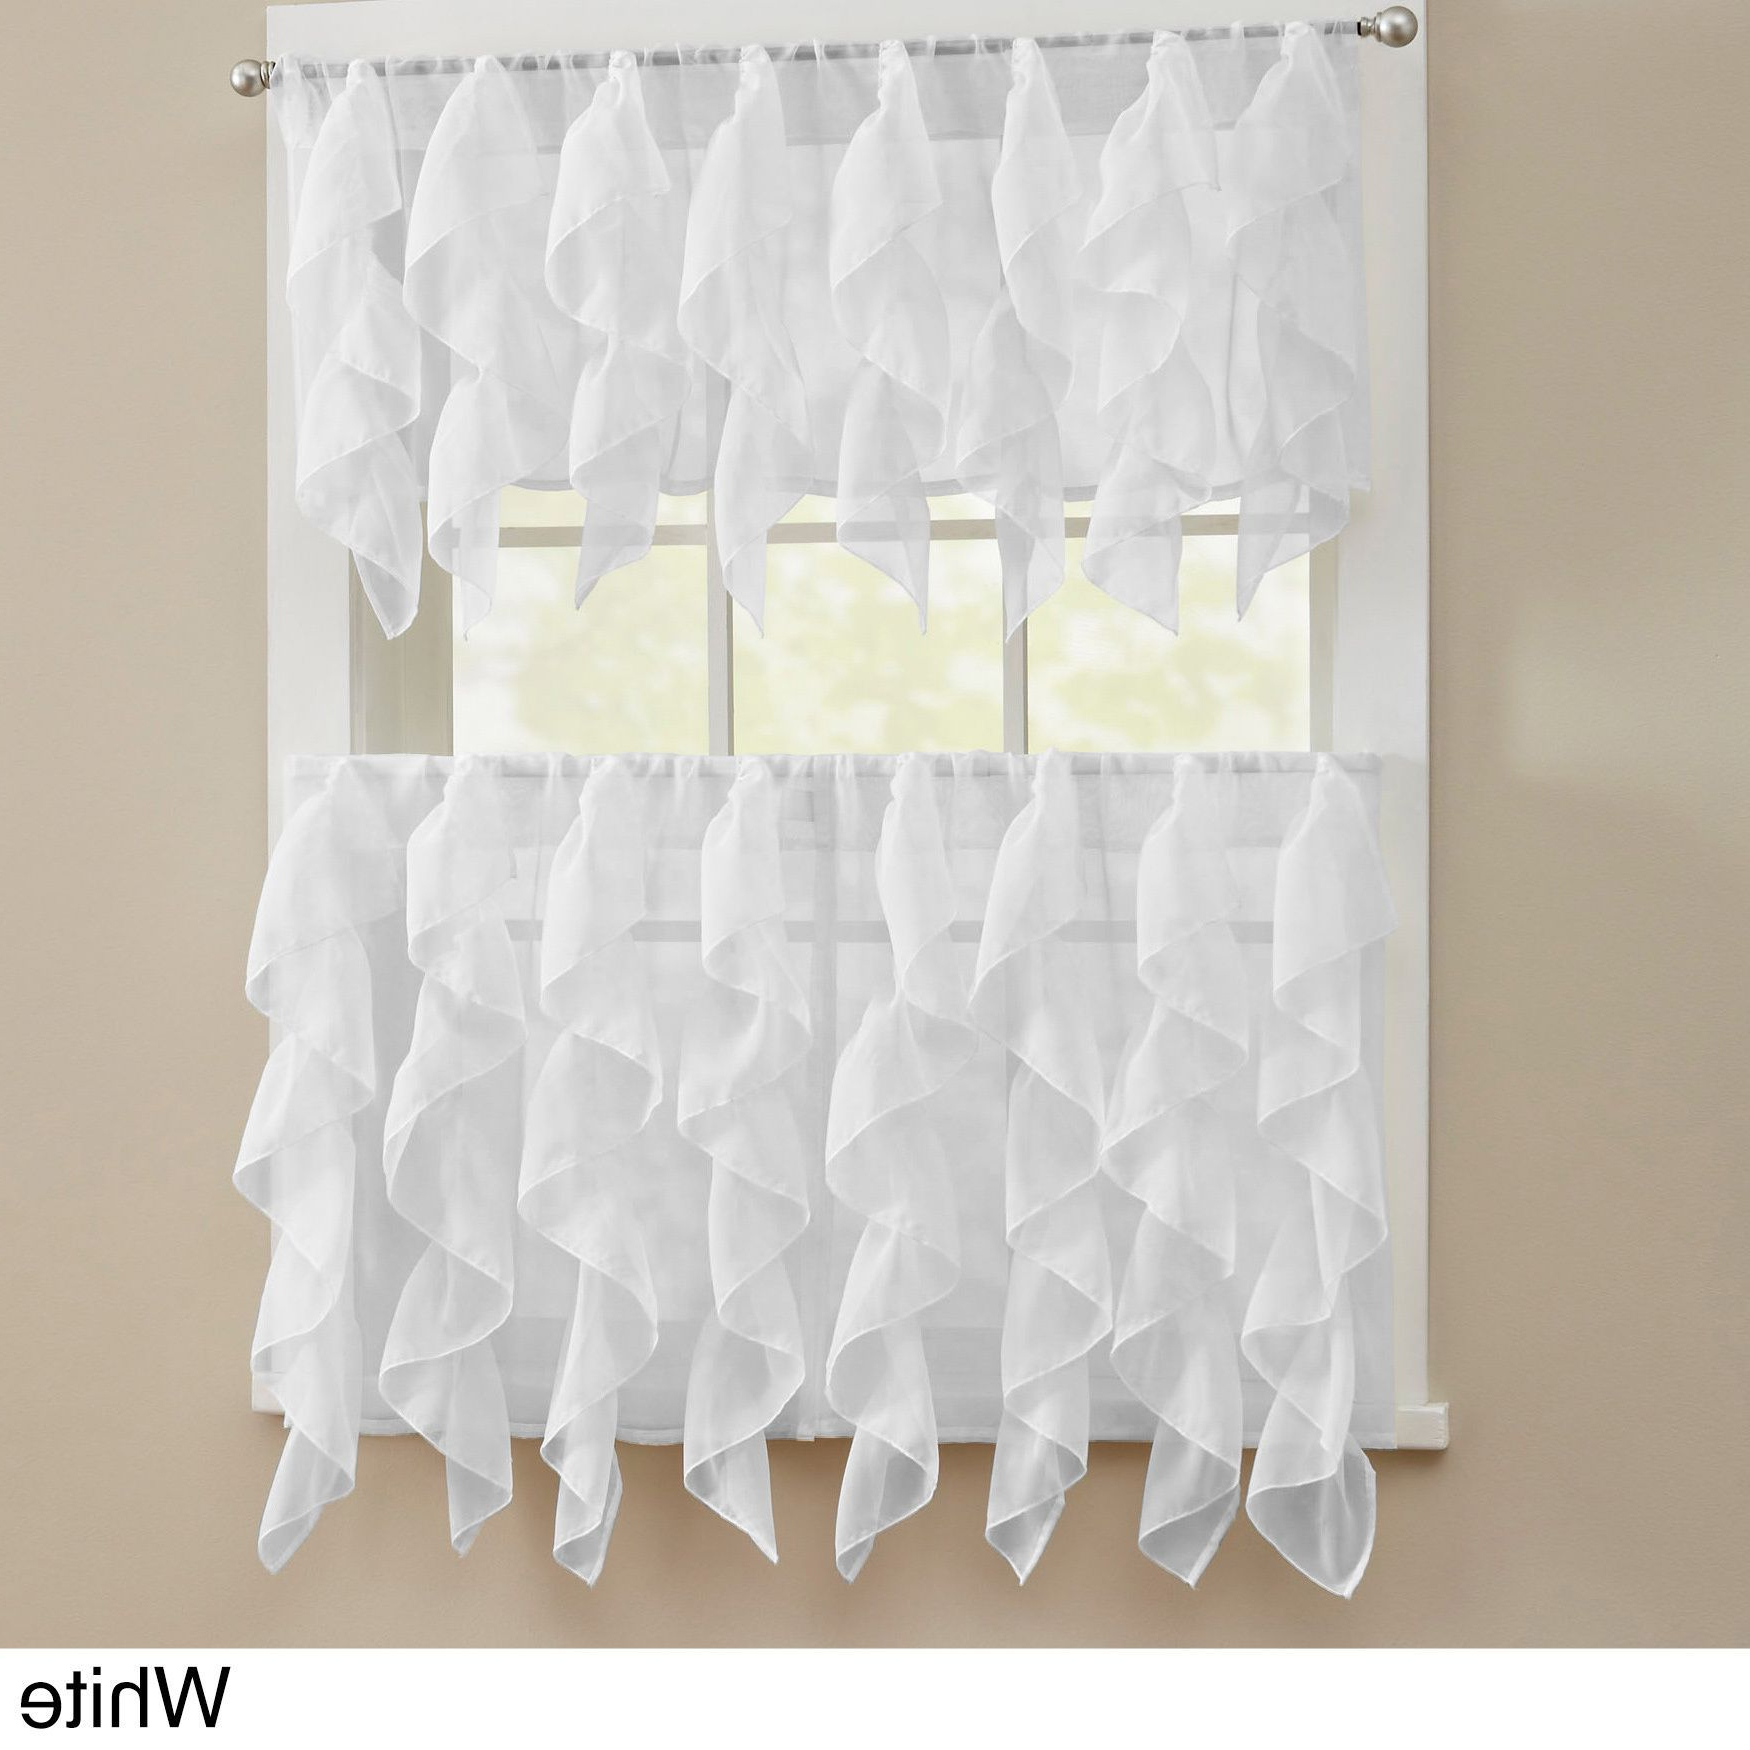 Sheer Voile Ruffled Tier Window Curtain Panels Within Most Recent N Chic Sheer Voile Vertical Ruffled Tier Window Curtain (View 14 of 20)